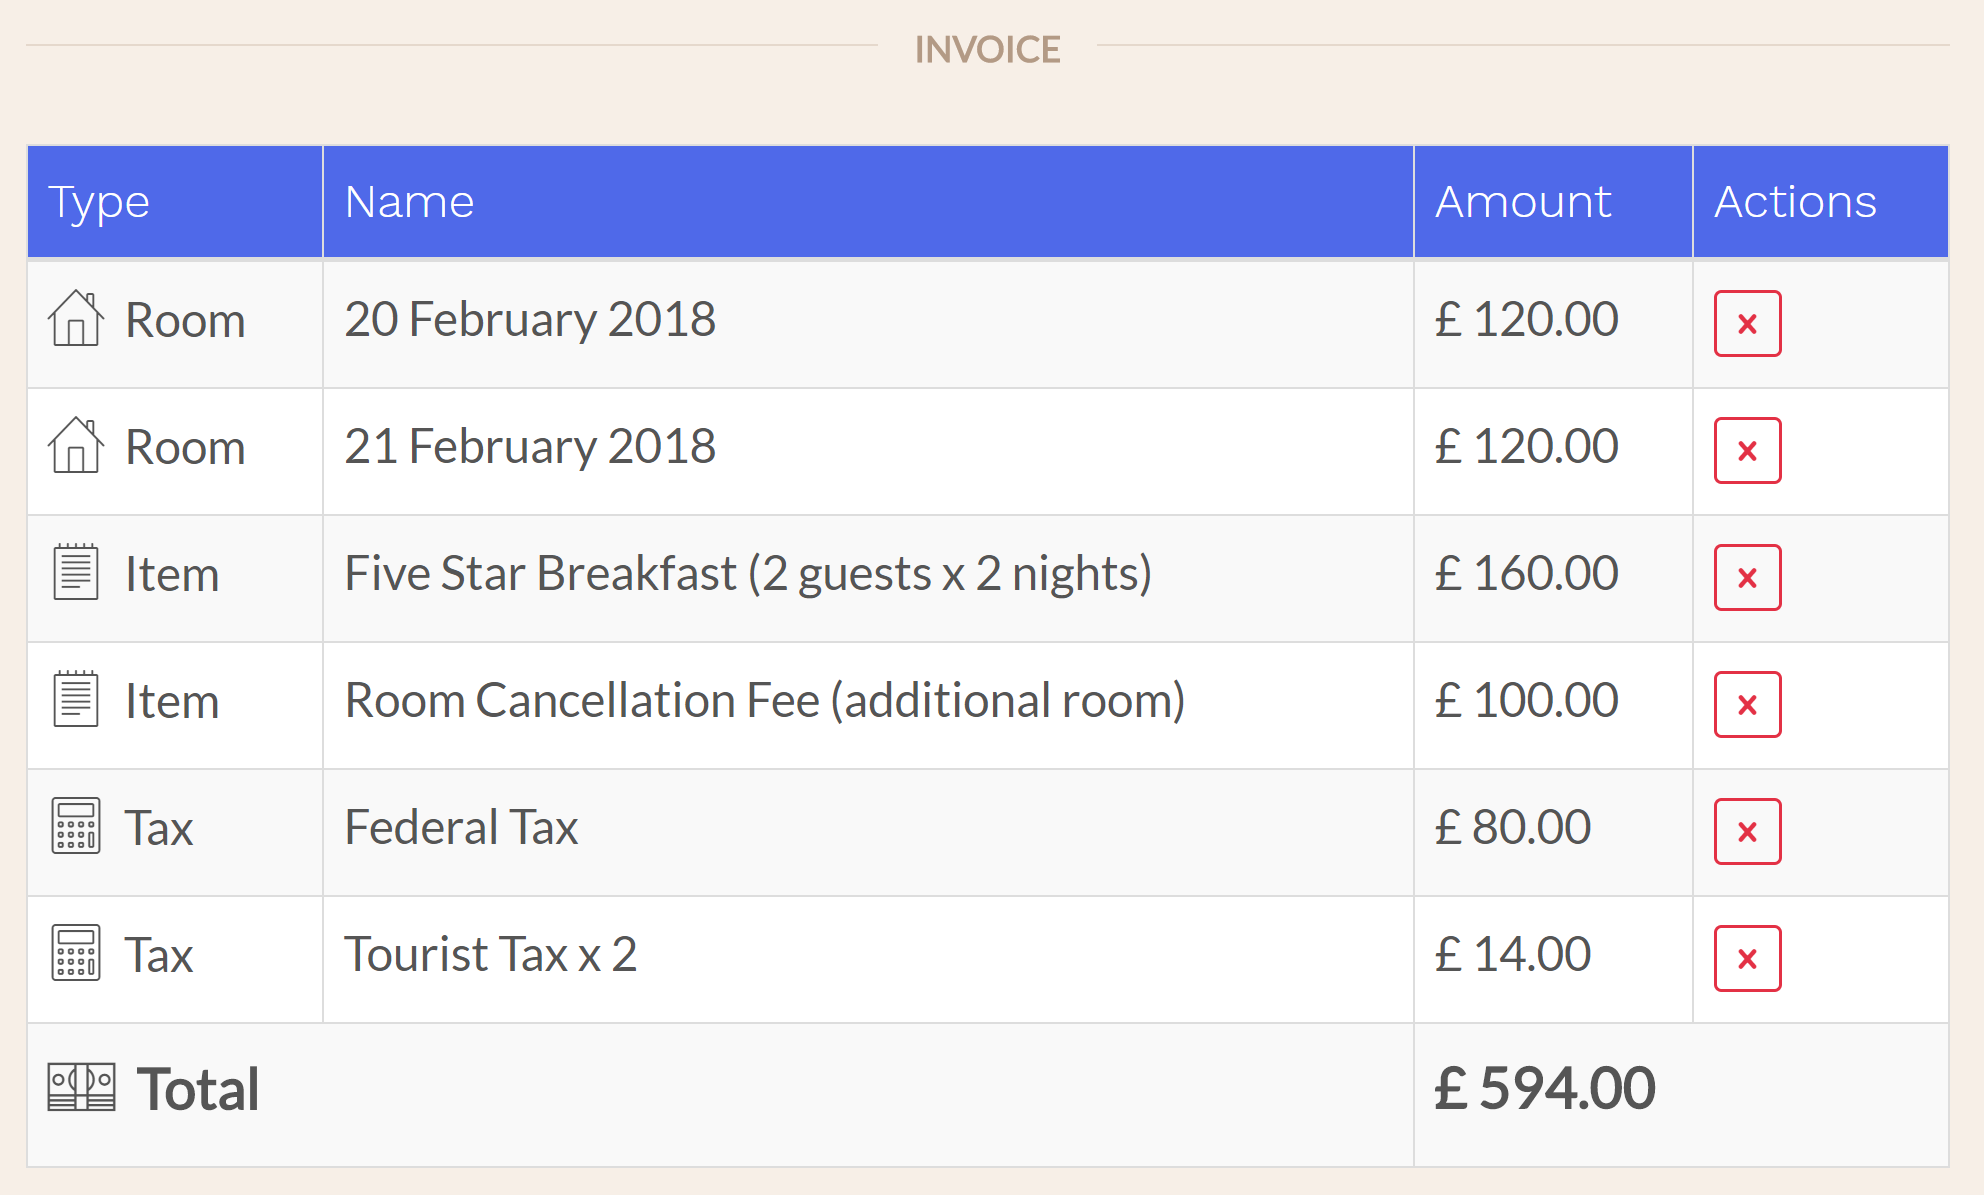 Hotel PMS Software Cancel a Room in a Group To cancel a room in a group, select the booking in your calendar, then go to 'Actions > Cancel this Room.' Enter a cancellation fee, if any, then click to cancel. The cancellation fee for this room will appear on the invoice of the main room for the group.